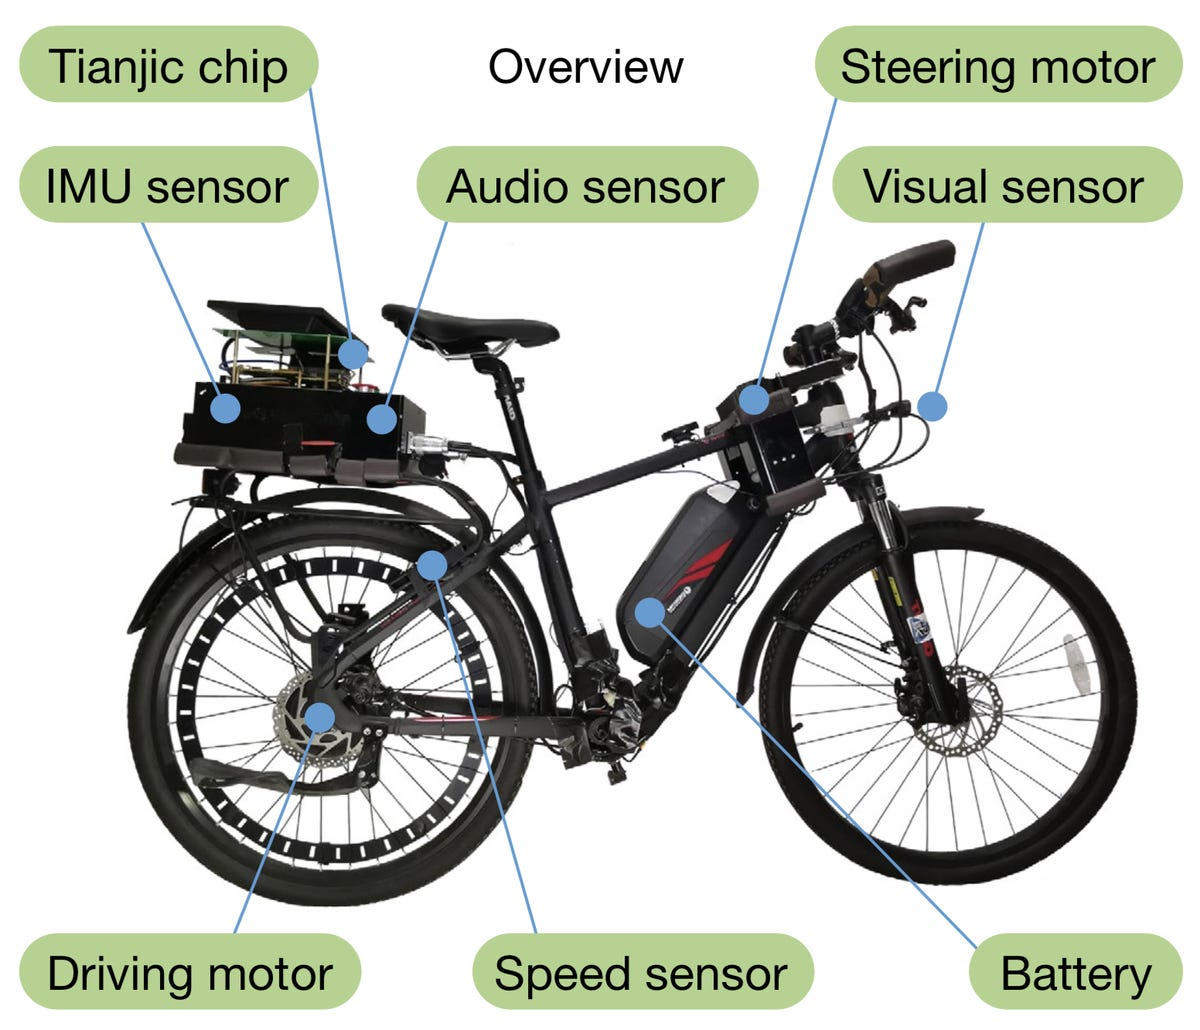 tsinghua-self-driving-bicycle-august-2019.png